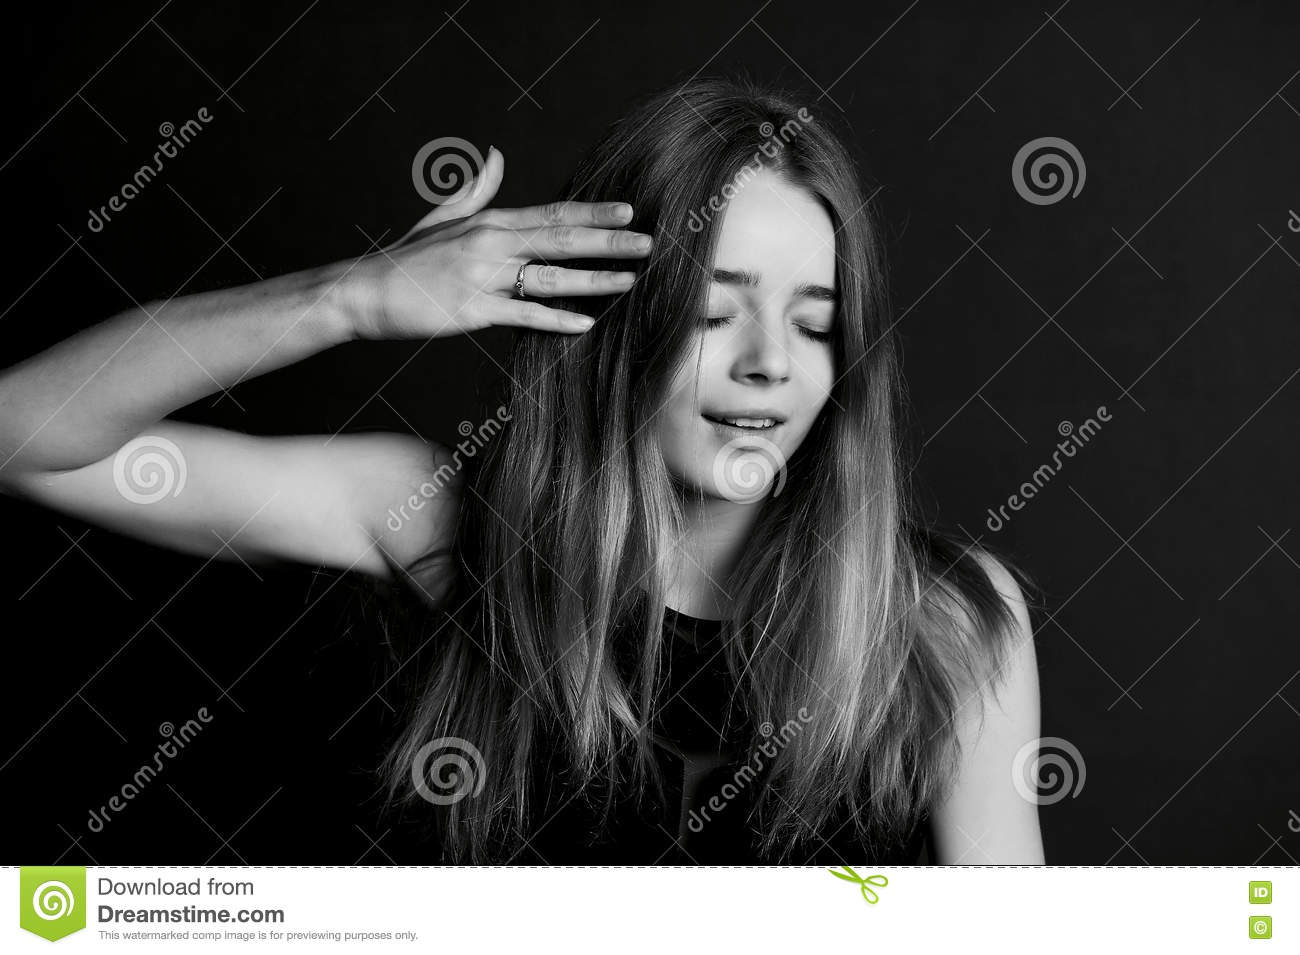 Skinny Tall Girl Of Model Appearance, Touching Hair. Stock Photo ...